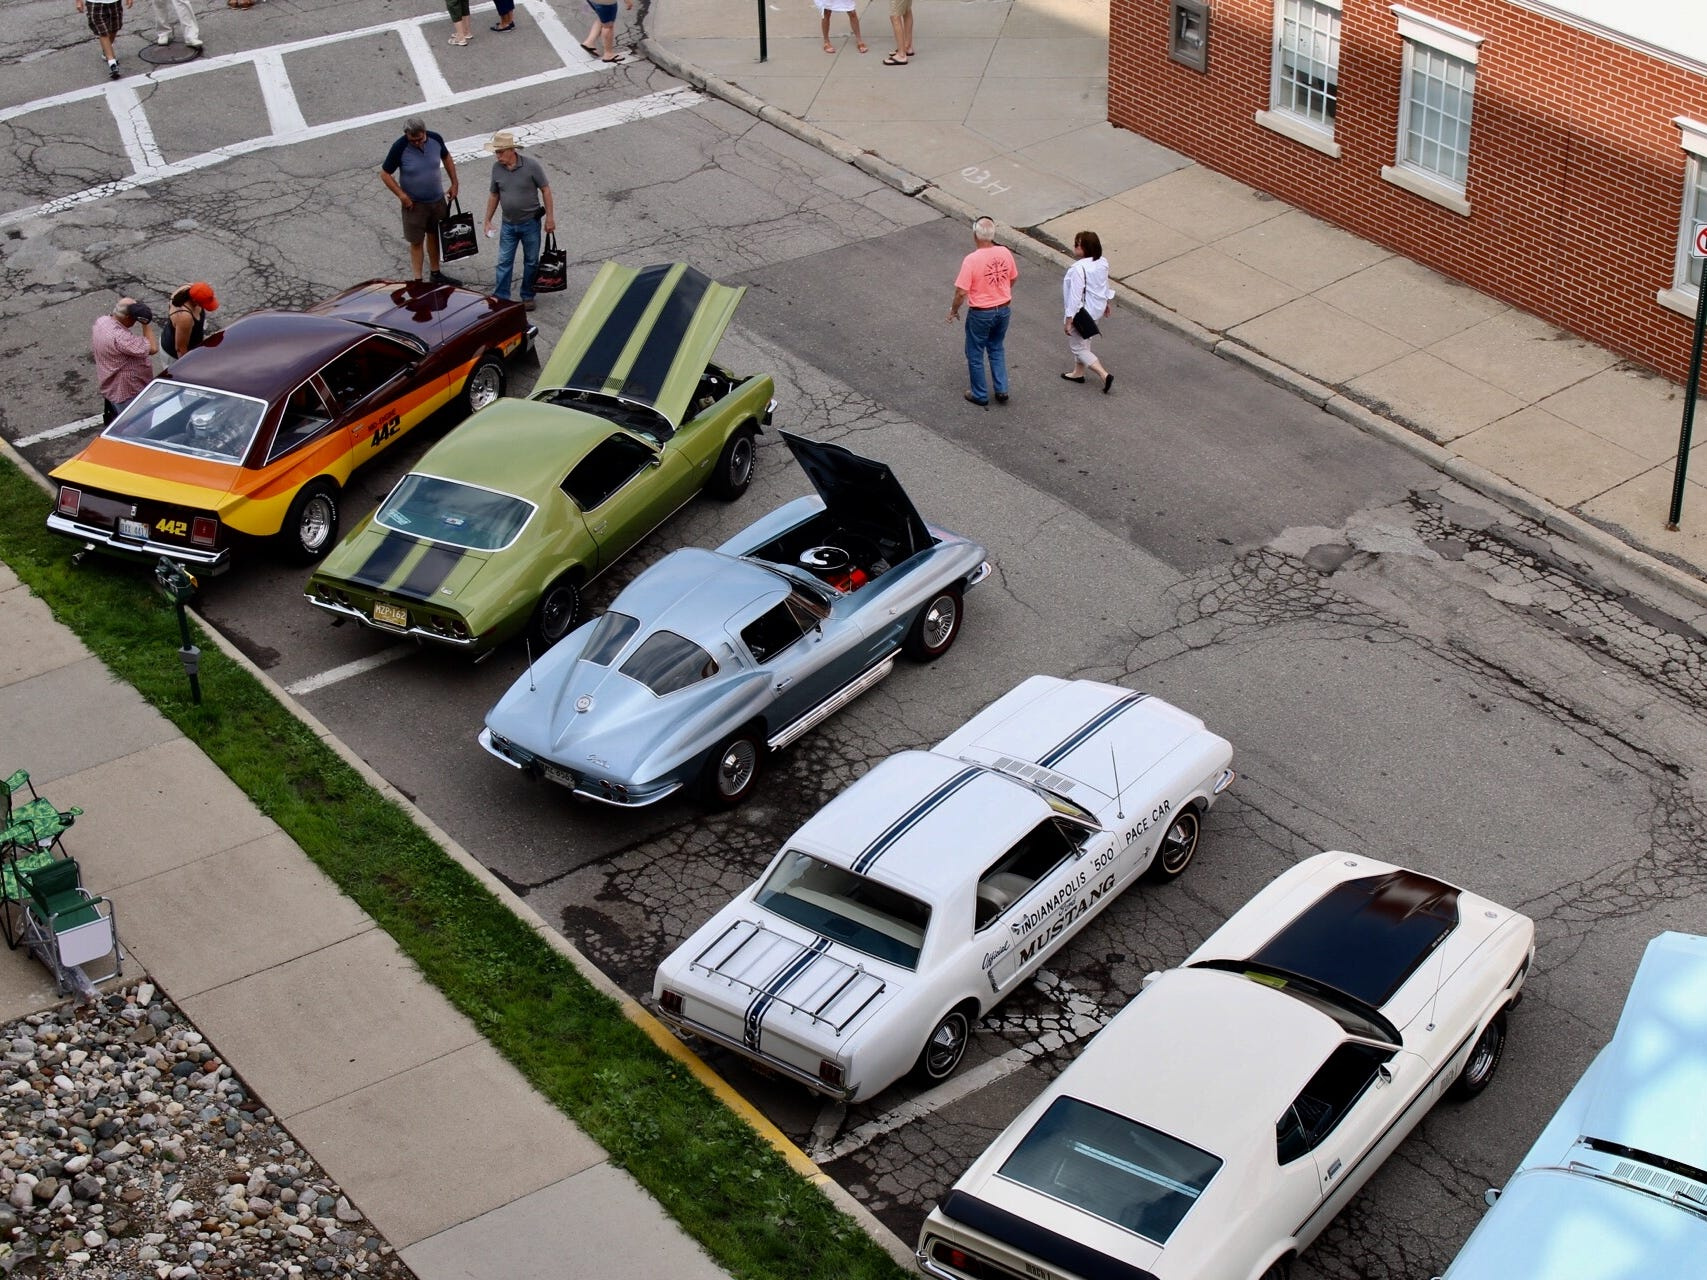 Classic cruisers take over the streets of downtown Birmingham.